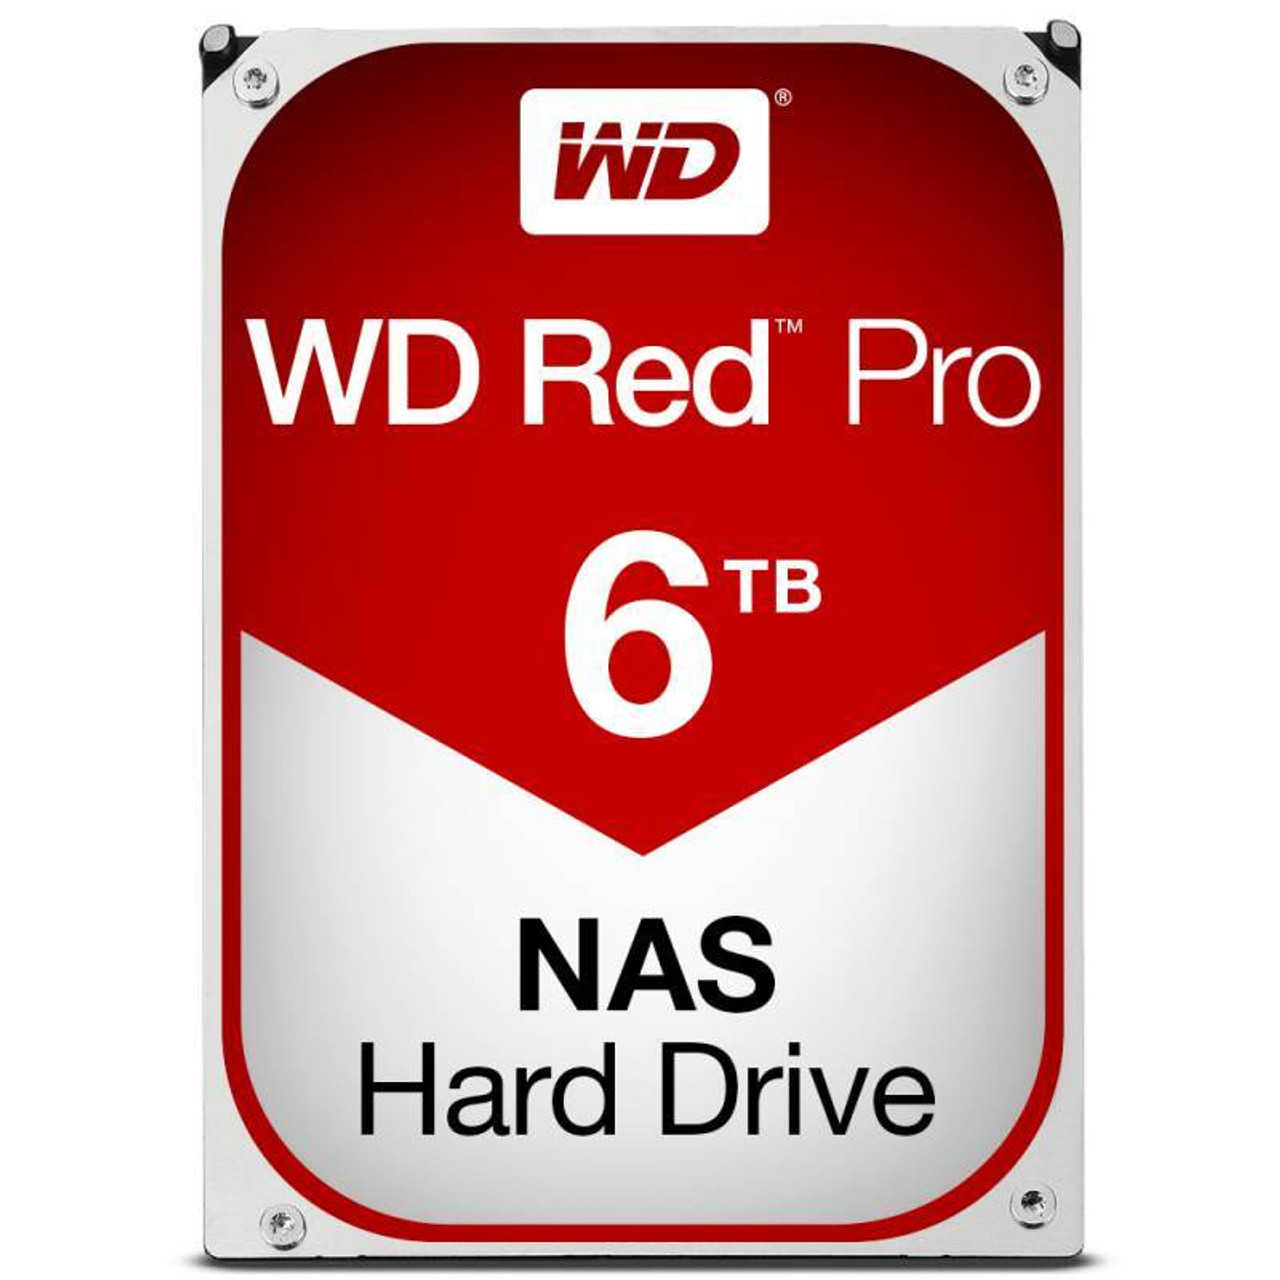 Product image for Western Digital WD 6TB Red Pro SATA3 NAS Hard Drive | CX Computer Superstore